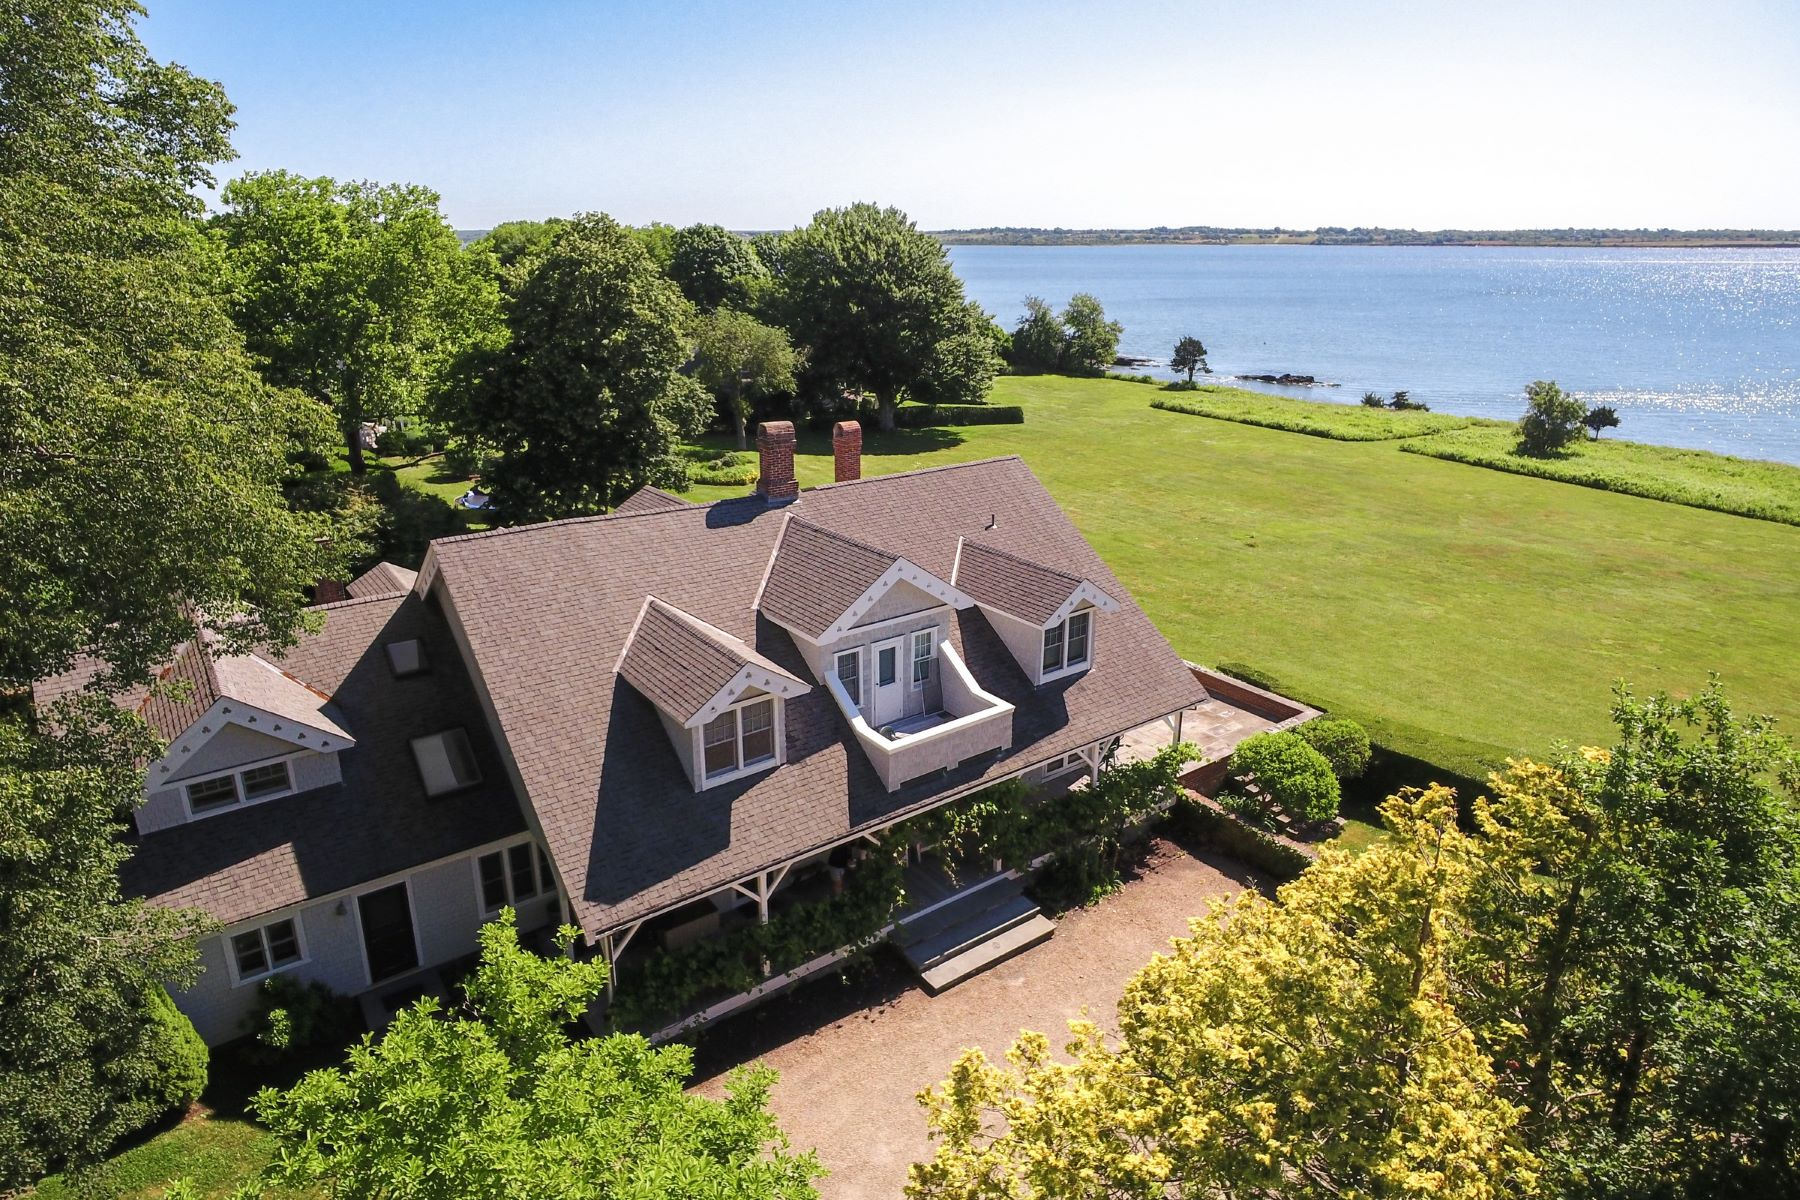 Single Family Homes for Sale at Indian Avenue Waterfront 561 Indian Avenue Middletown, Rhode Island 02842 United States